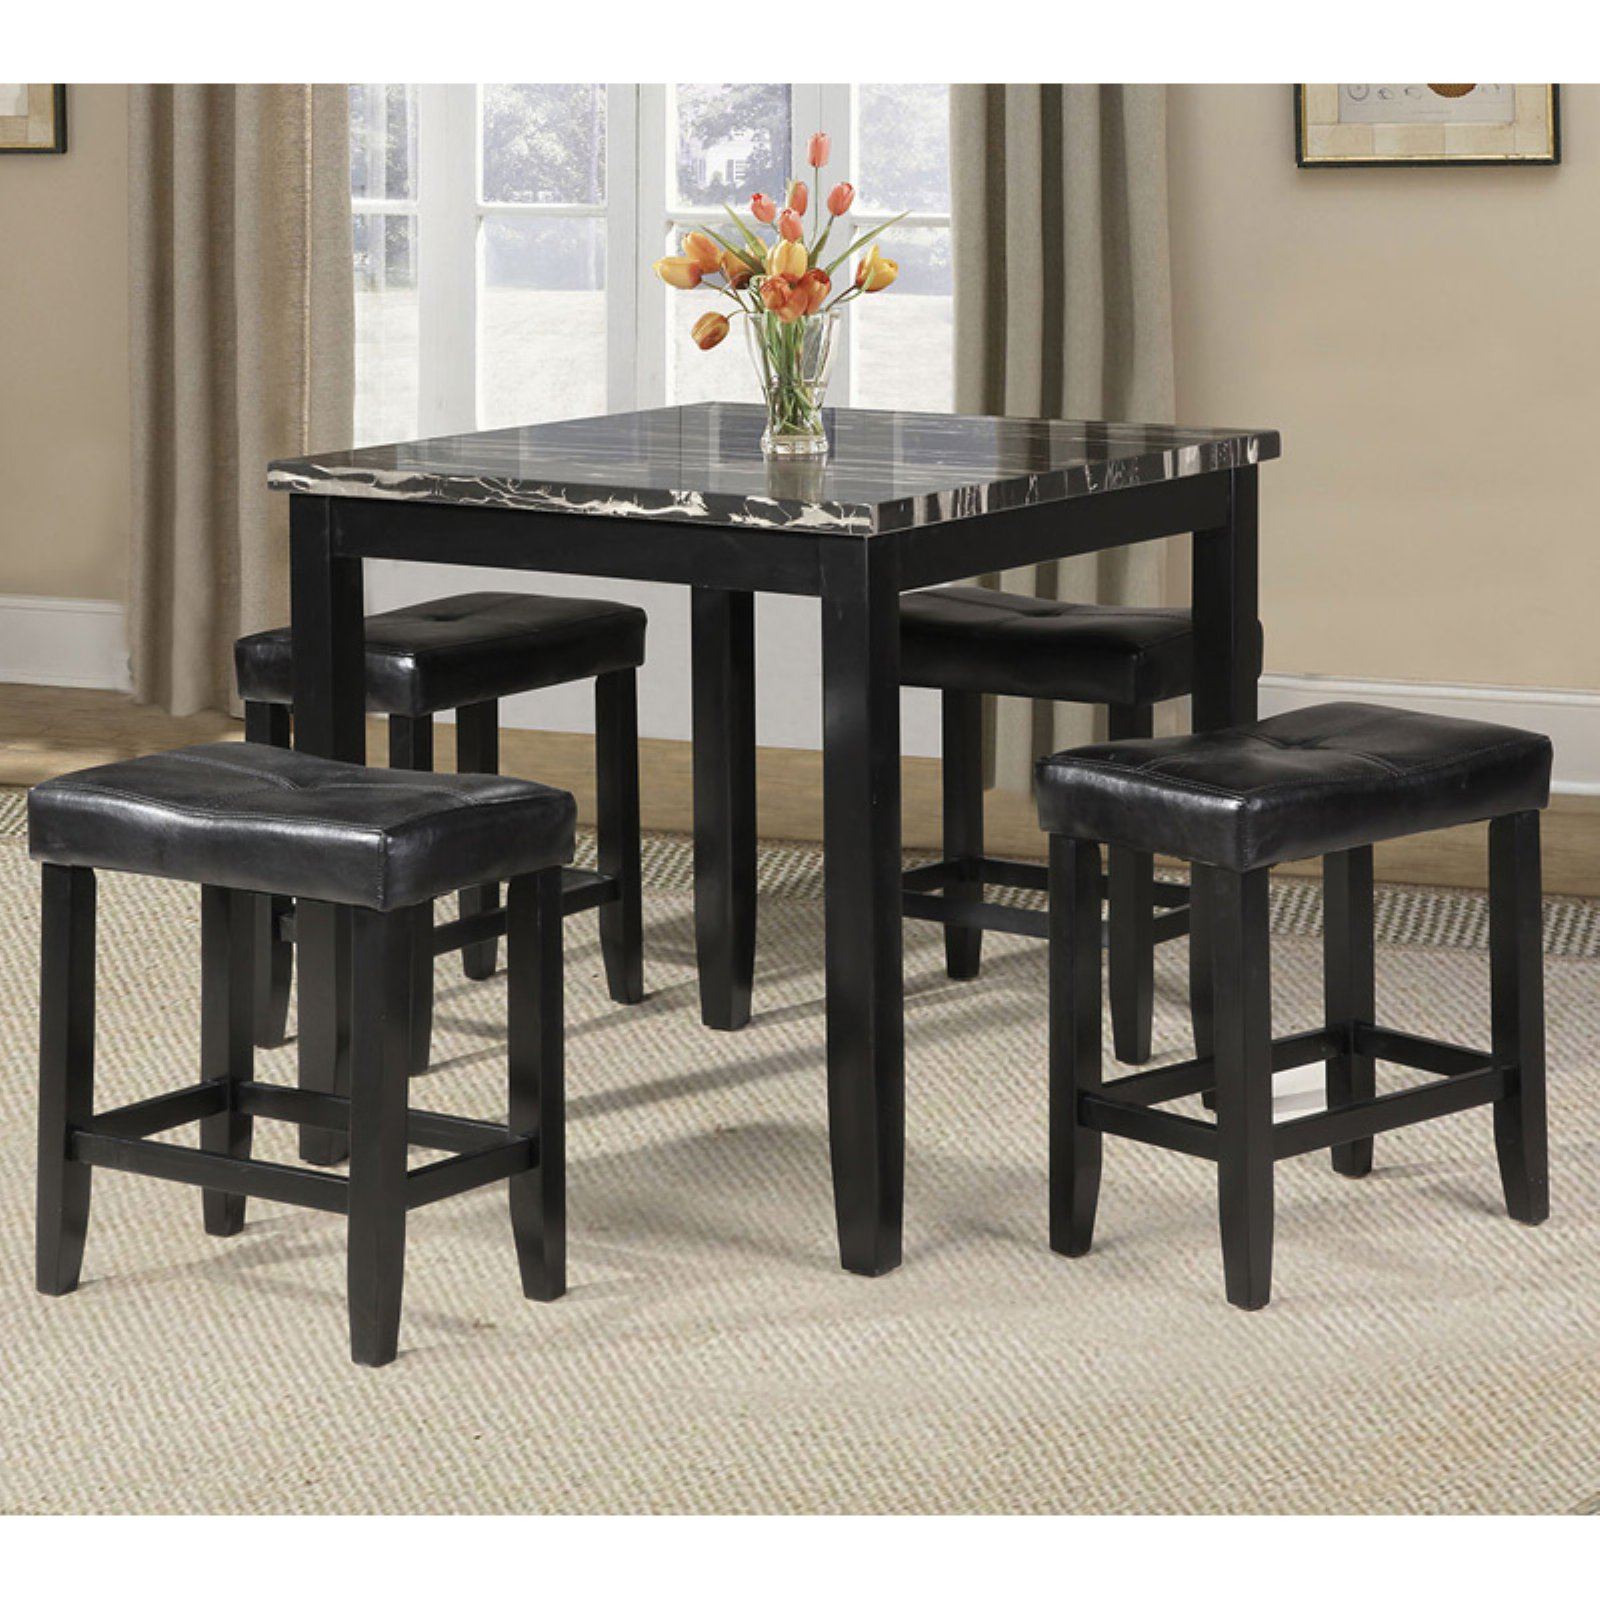 Acme Blythe 5-Piece Counter-Height Dining Set, Faux Marble and Black